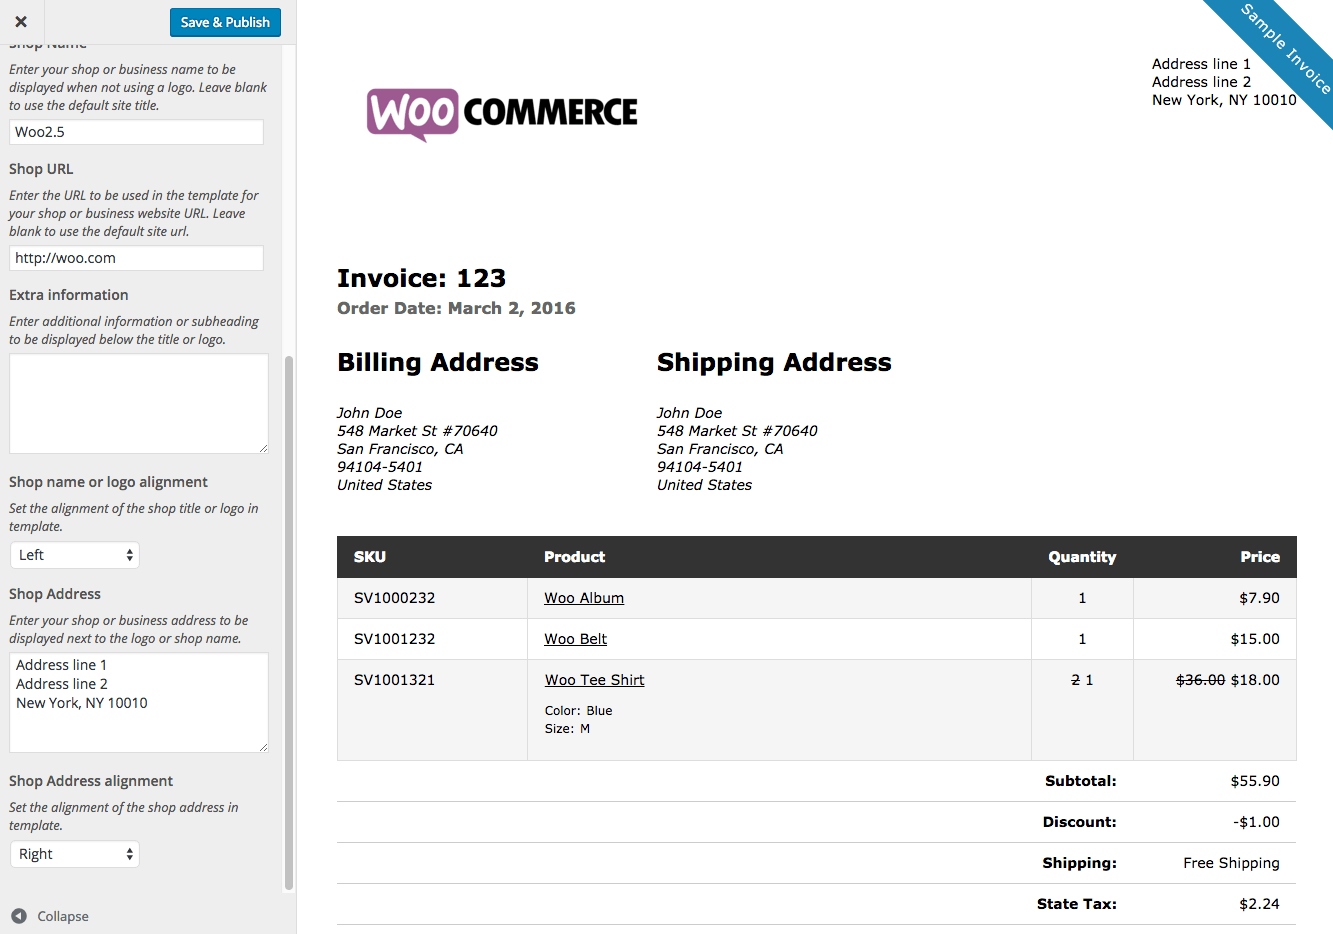 Indianaparanormalus  Pleasing Print Invoices Amp Packing Lists  Woocommerce With Foxy Woocommerce Print Invoices  Packing Lists Customizer With Adorable Car Sales Invoice Template Also Transport Invoice Format In Addition Igf Invoice Finance Ltd And Credit Memo Invoice As Well As How To Prepare A Invoice Additionally Easy Invoice Free Download From Woocommercecom With Indianaparanormalus  Foxy Print Invoices Amp Packing Lists  Woocommerce With Adorable Woocommerce Print Invoices  Packing Lists Customizer And Pleasing Car Sales Invoice Template Also Transport Invoice Format In Addition Igf Invoice Finance Ltd From Woocommercecom